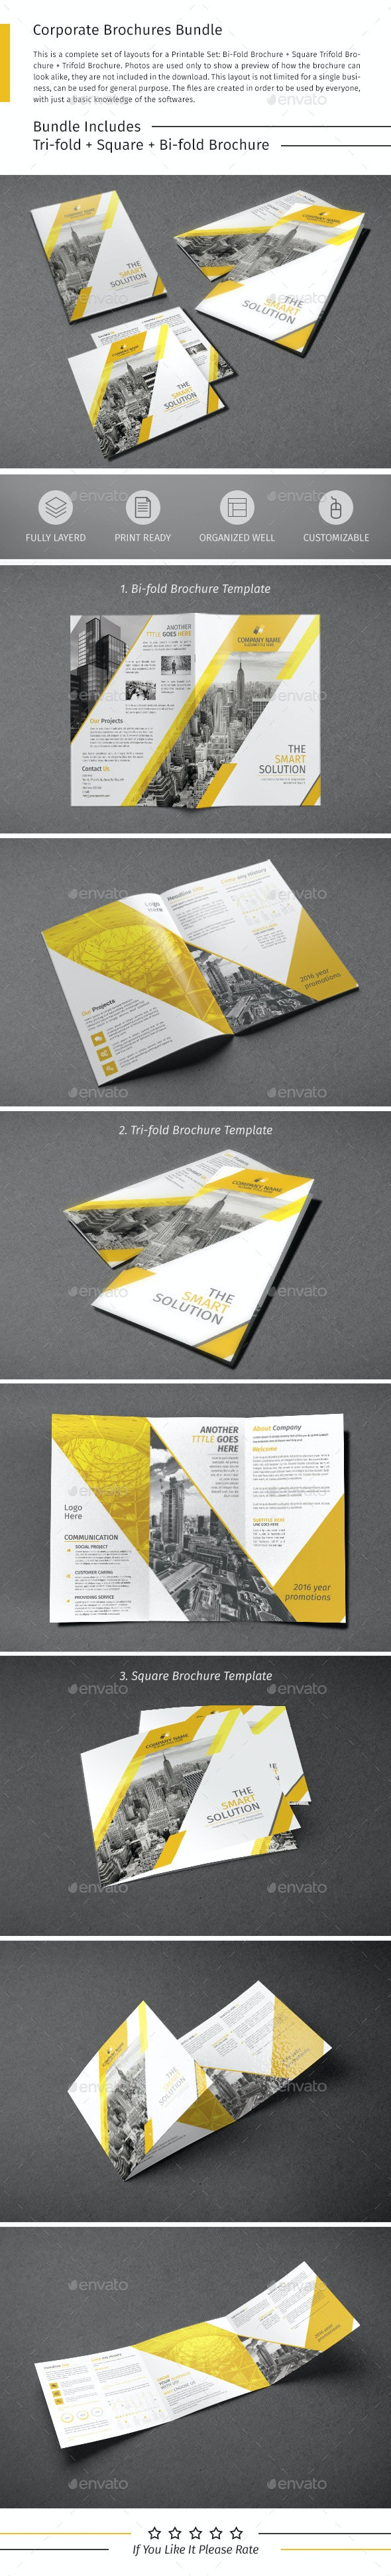 Brochure Bundle 07 - Corporate Brochures